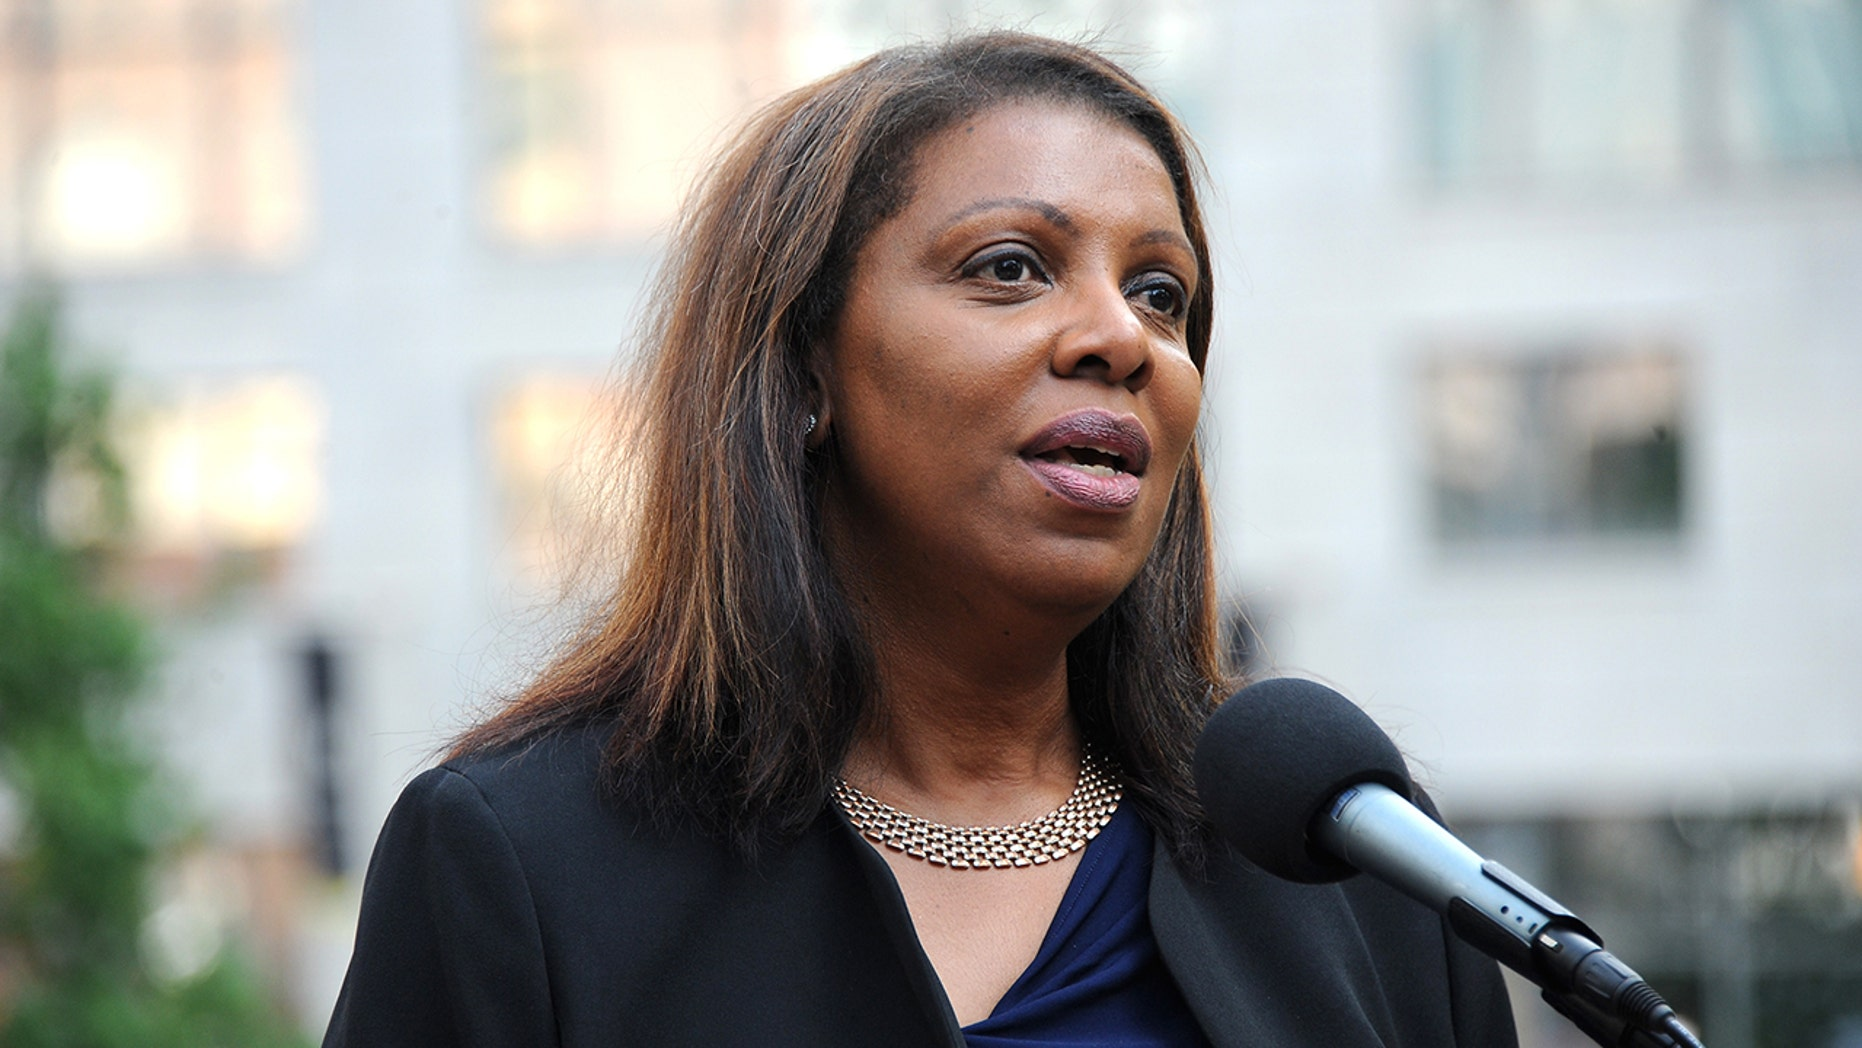 Incoming New York Attorney General Letitia James plans to fully investigation President Trump and his family's business dealings when she takes office next year.